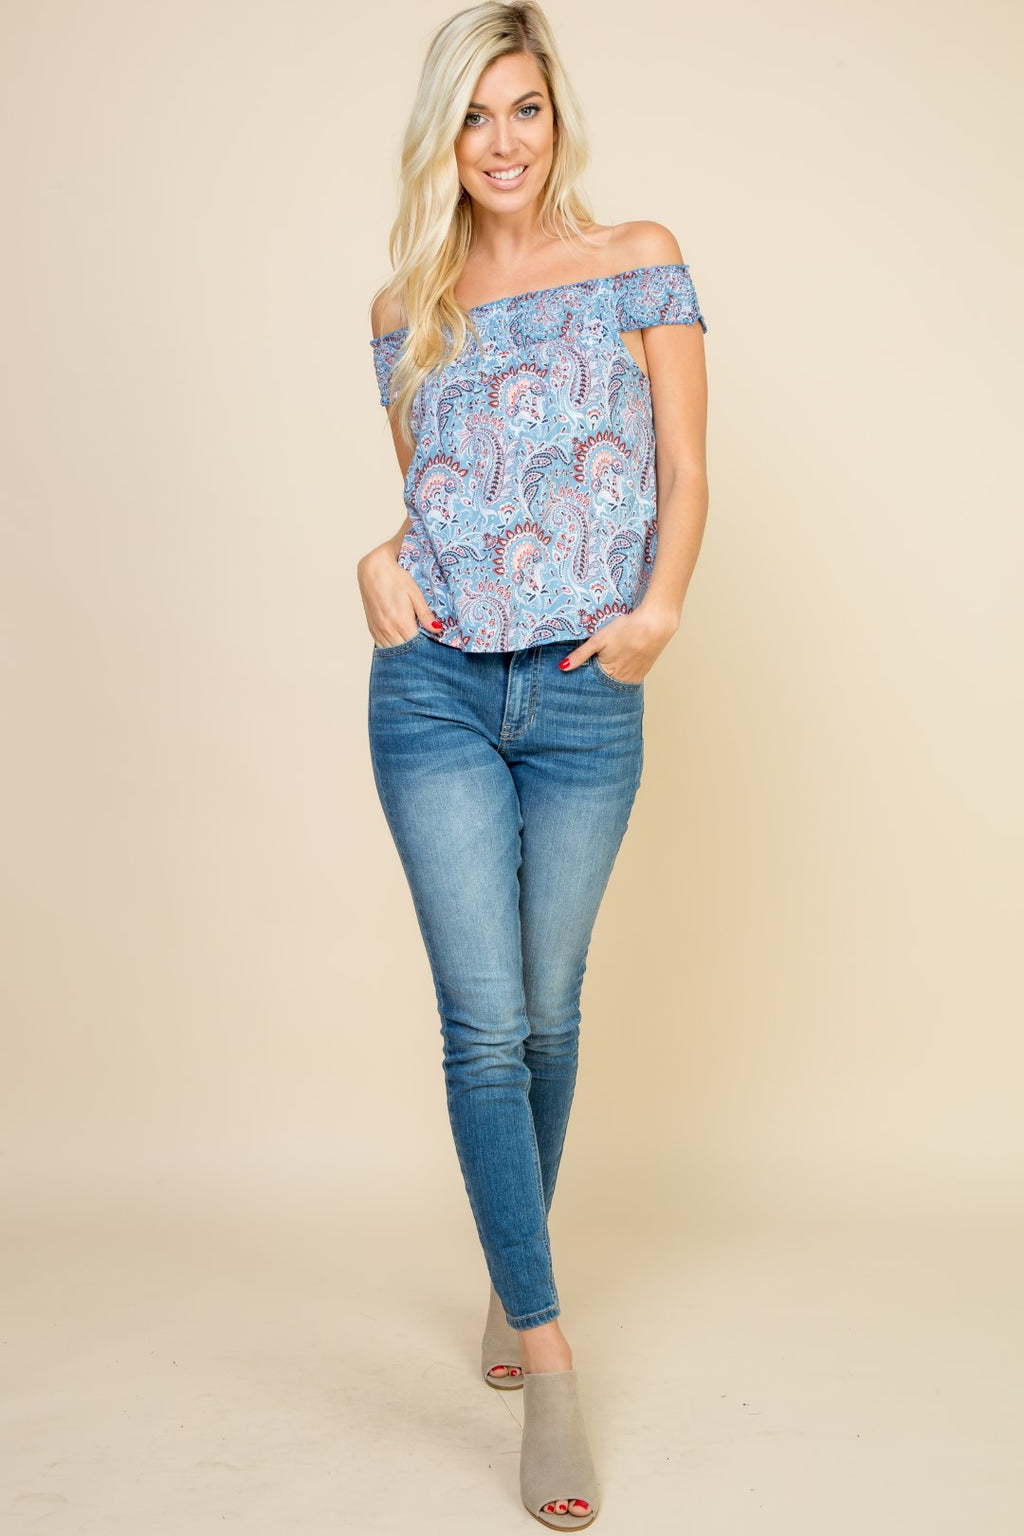 Blue Paisley Off The Shoulder Top